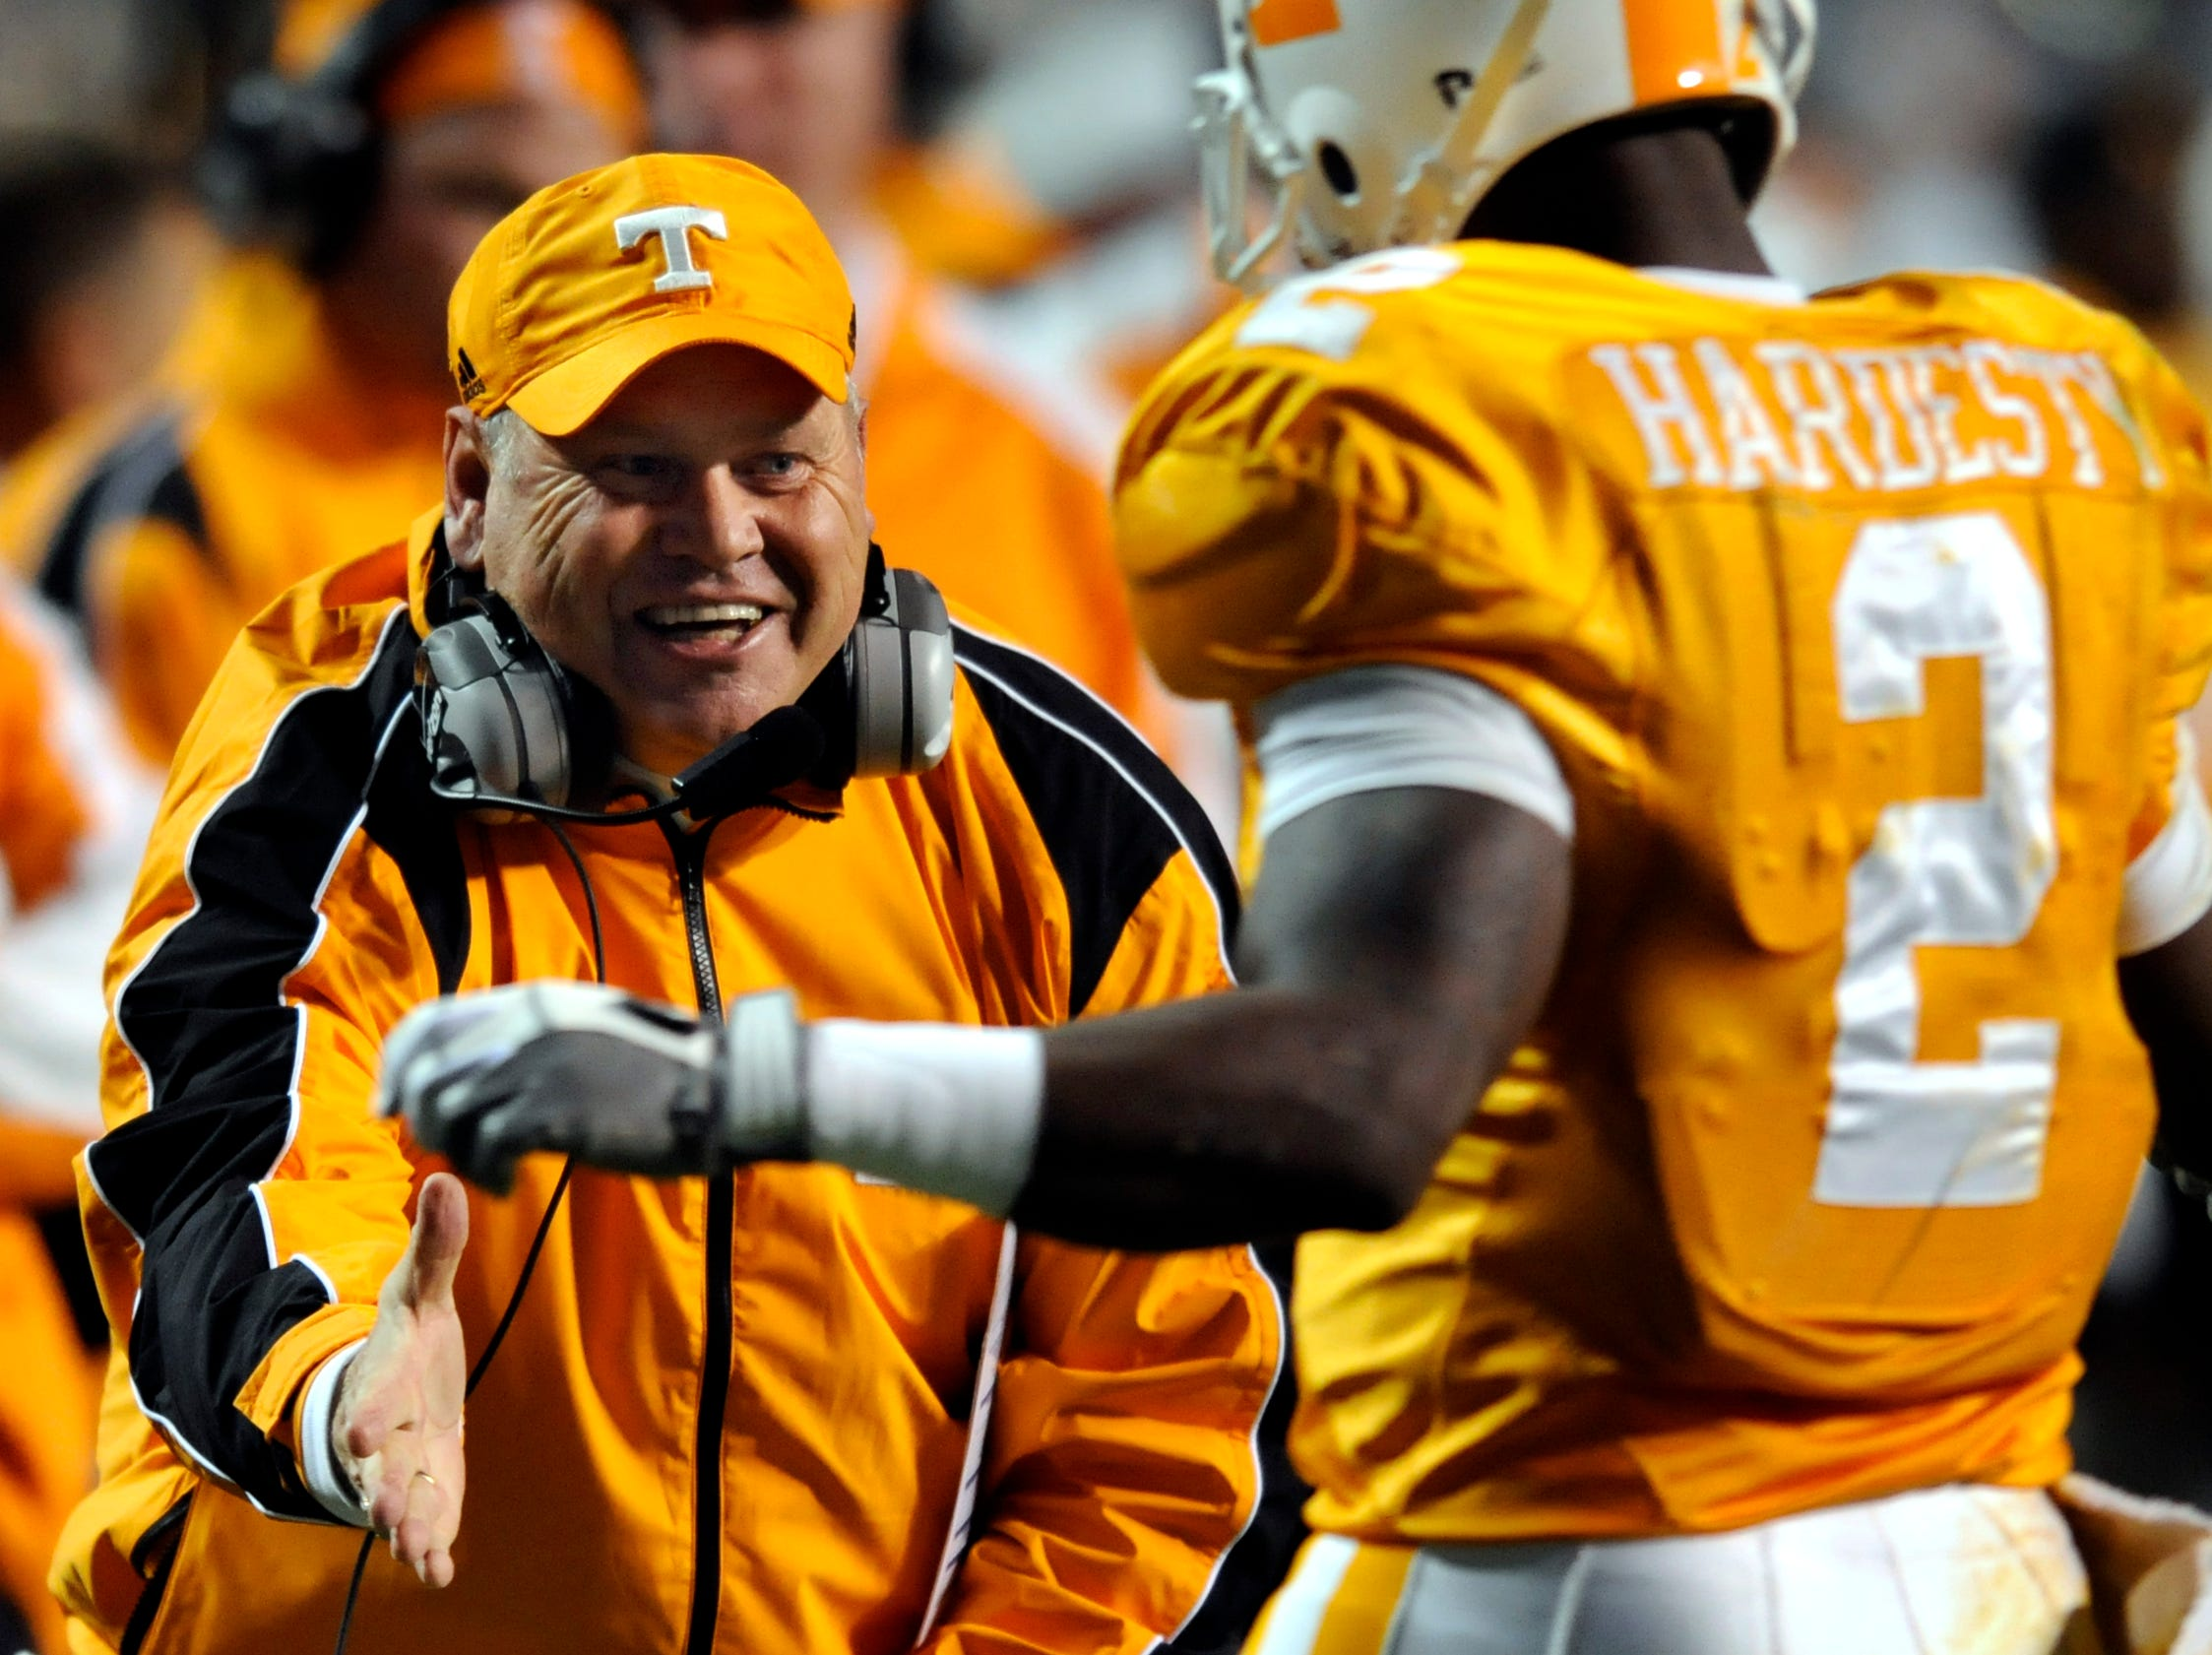 Tennessee head coach Phillip Fulmer congratulates running back Montario Hardesty (2) as he comes off the field after scoring one of Tennessee's touchdowns in their 28-10 victory over Kentucky Saturday in Neyland Stadium in Knoxville.